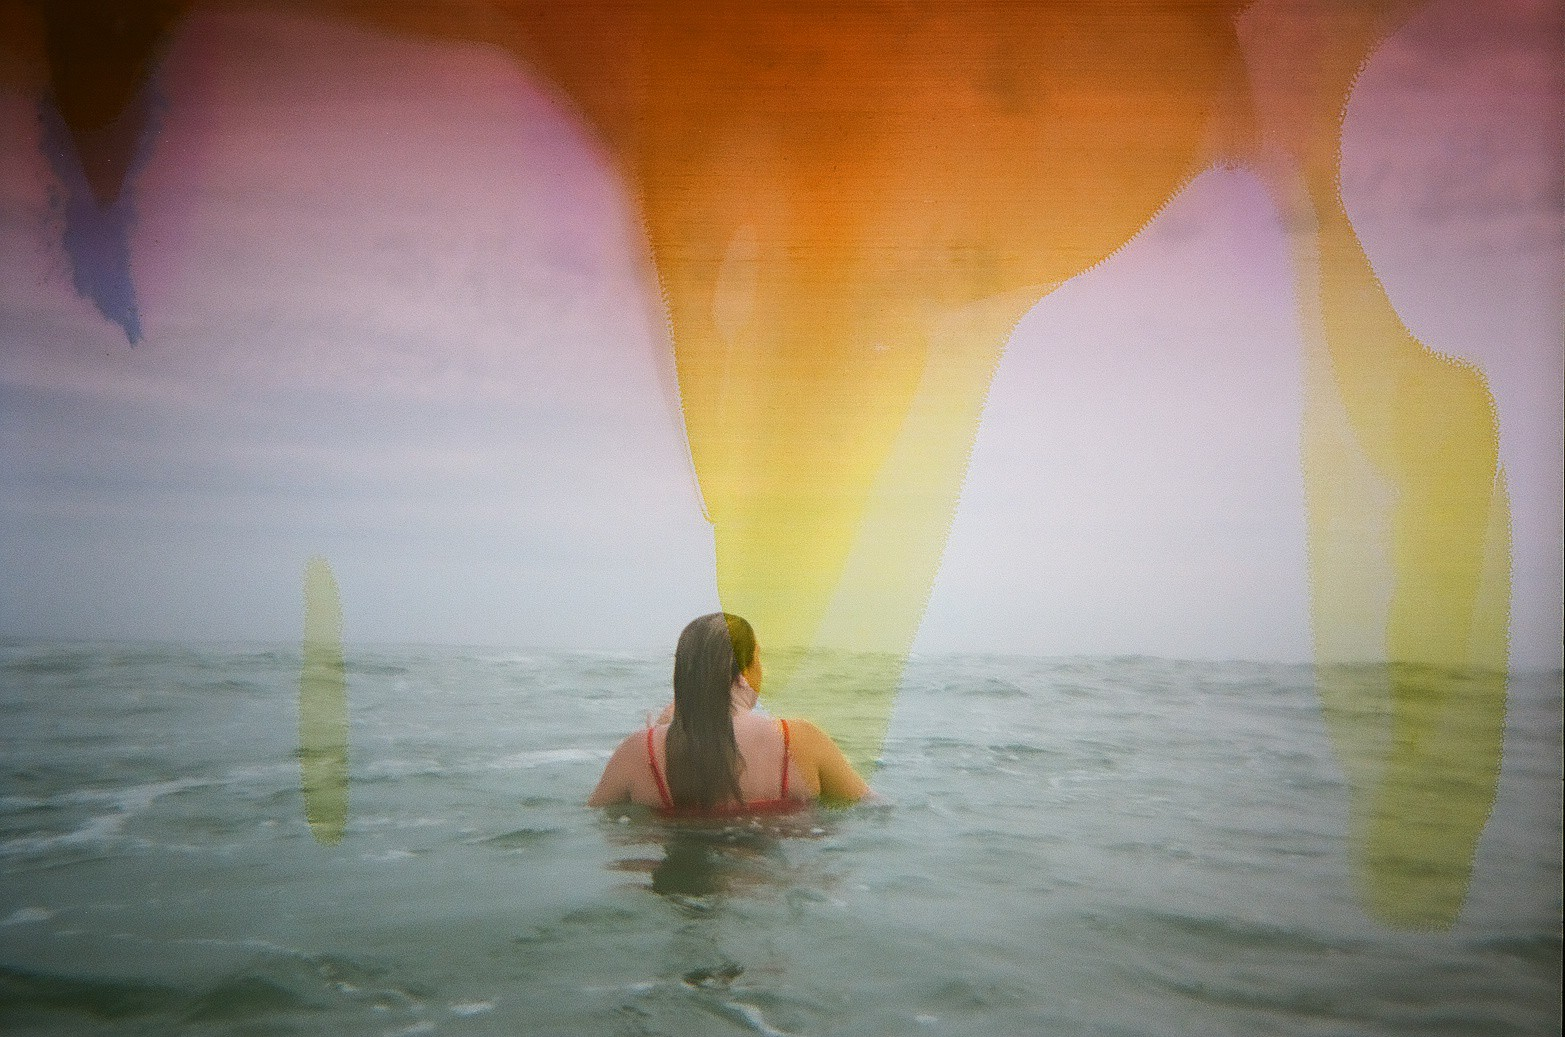 """35mm film photographed with a plastic """"waterproof"""" point and shoot from my childhood, colors caused by a salt water leak reacting with the film."""